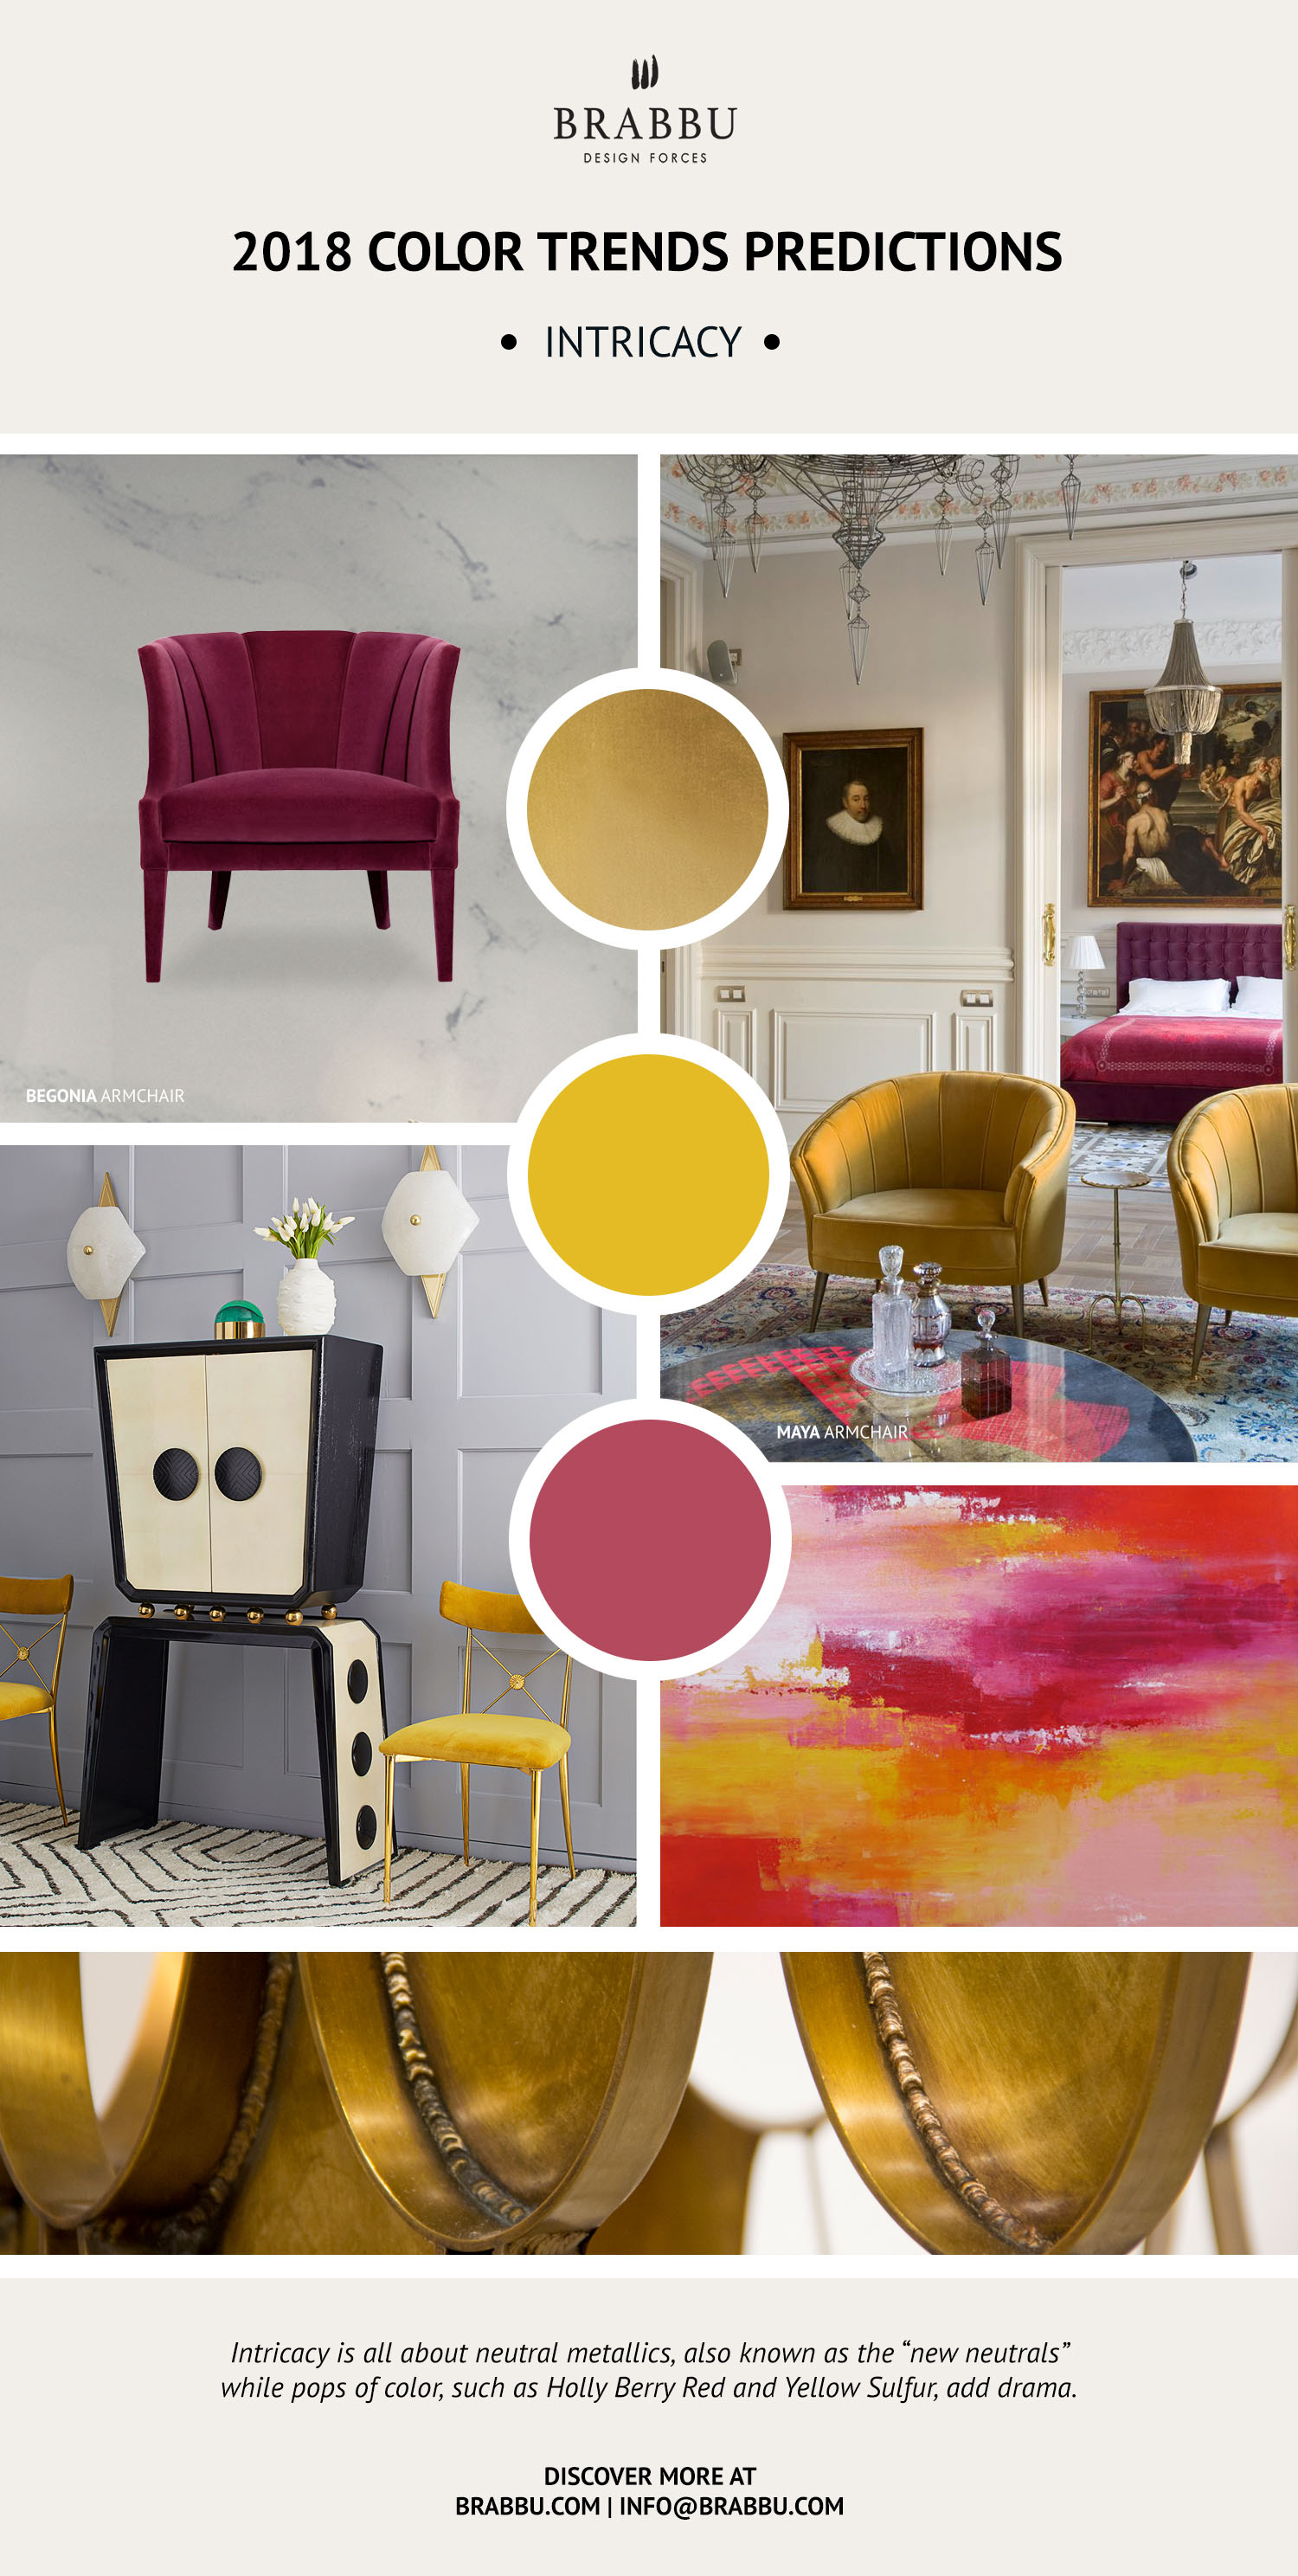 color trend Pantone Color Trend Predictions For 2018 8 1 modern Rugs design Incredible Spring Color Ideas for modern Rugs design 8 1